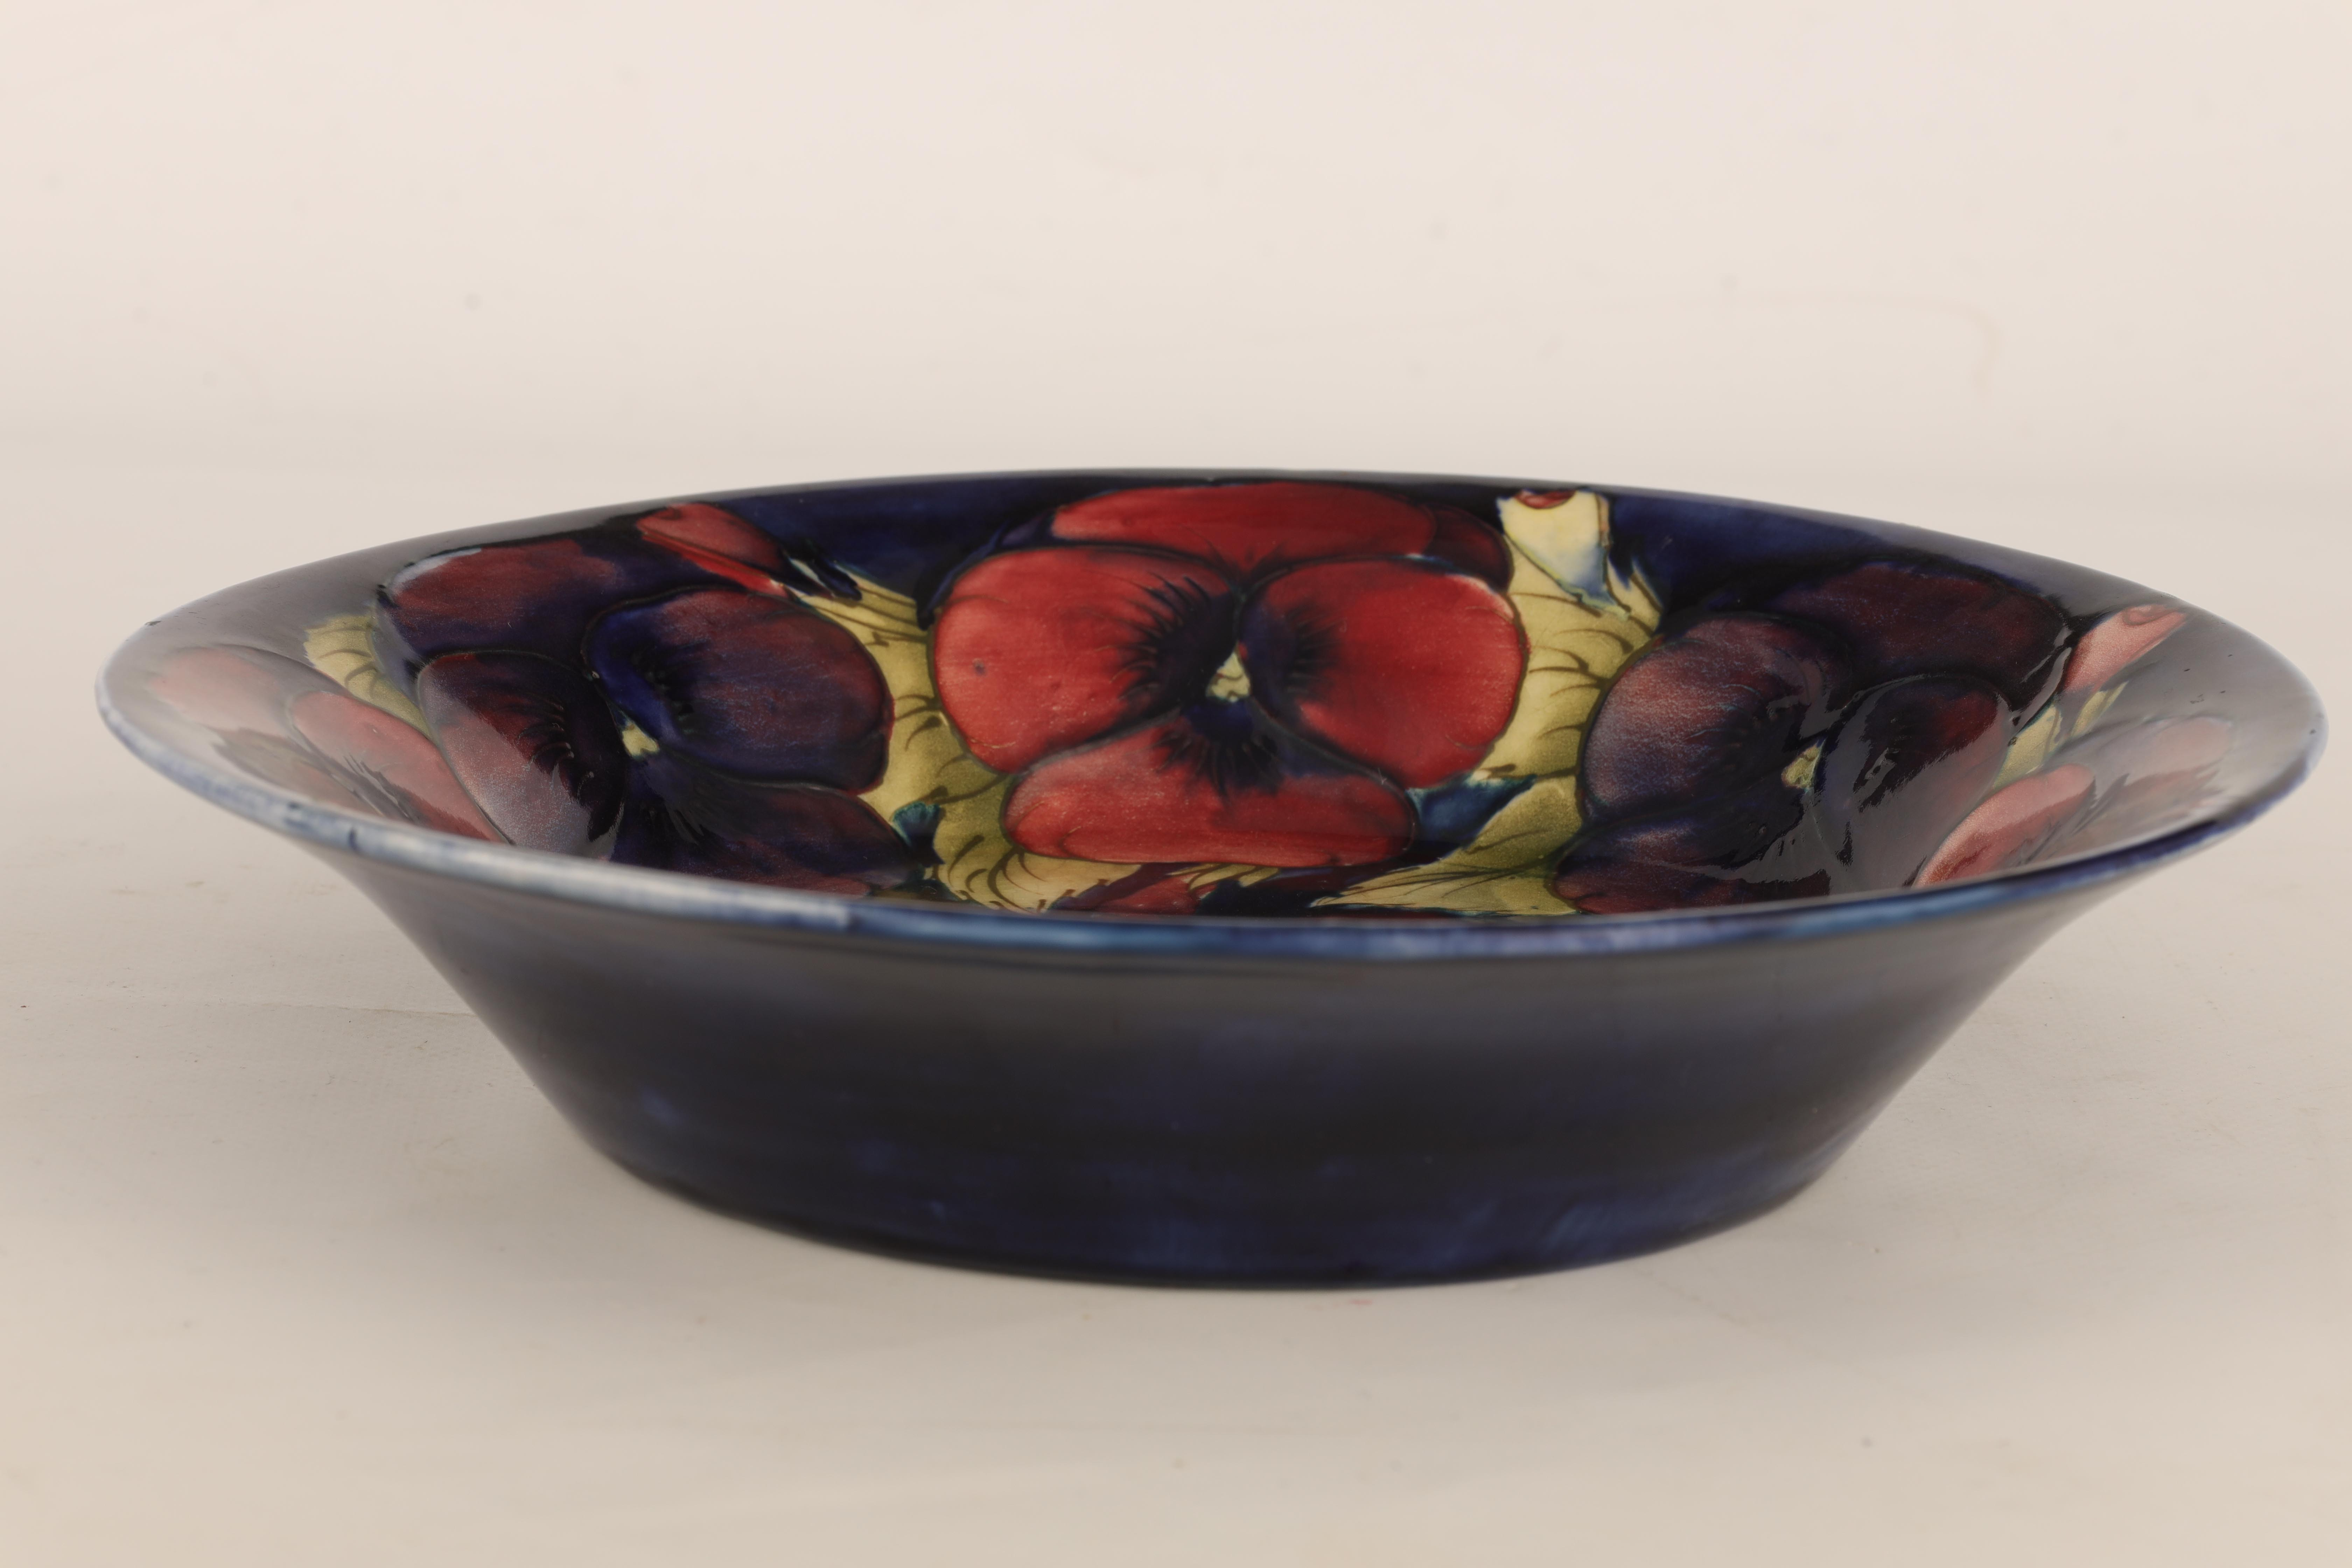 A 1930S/40S MOORCROFT LARGE SHALLOW DISH WITH EVERTED RIM decorated in the big pansy pattern on a - Image 3 of 5